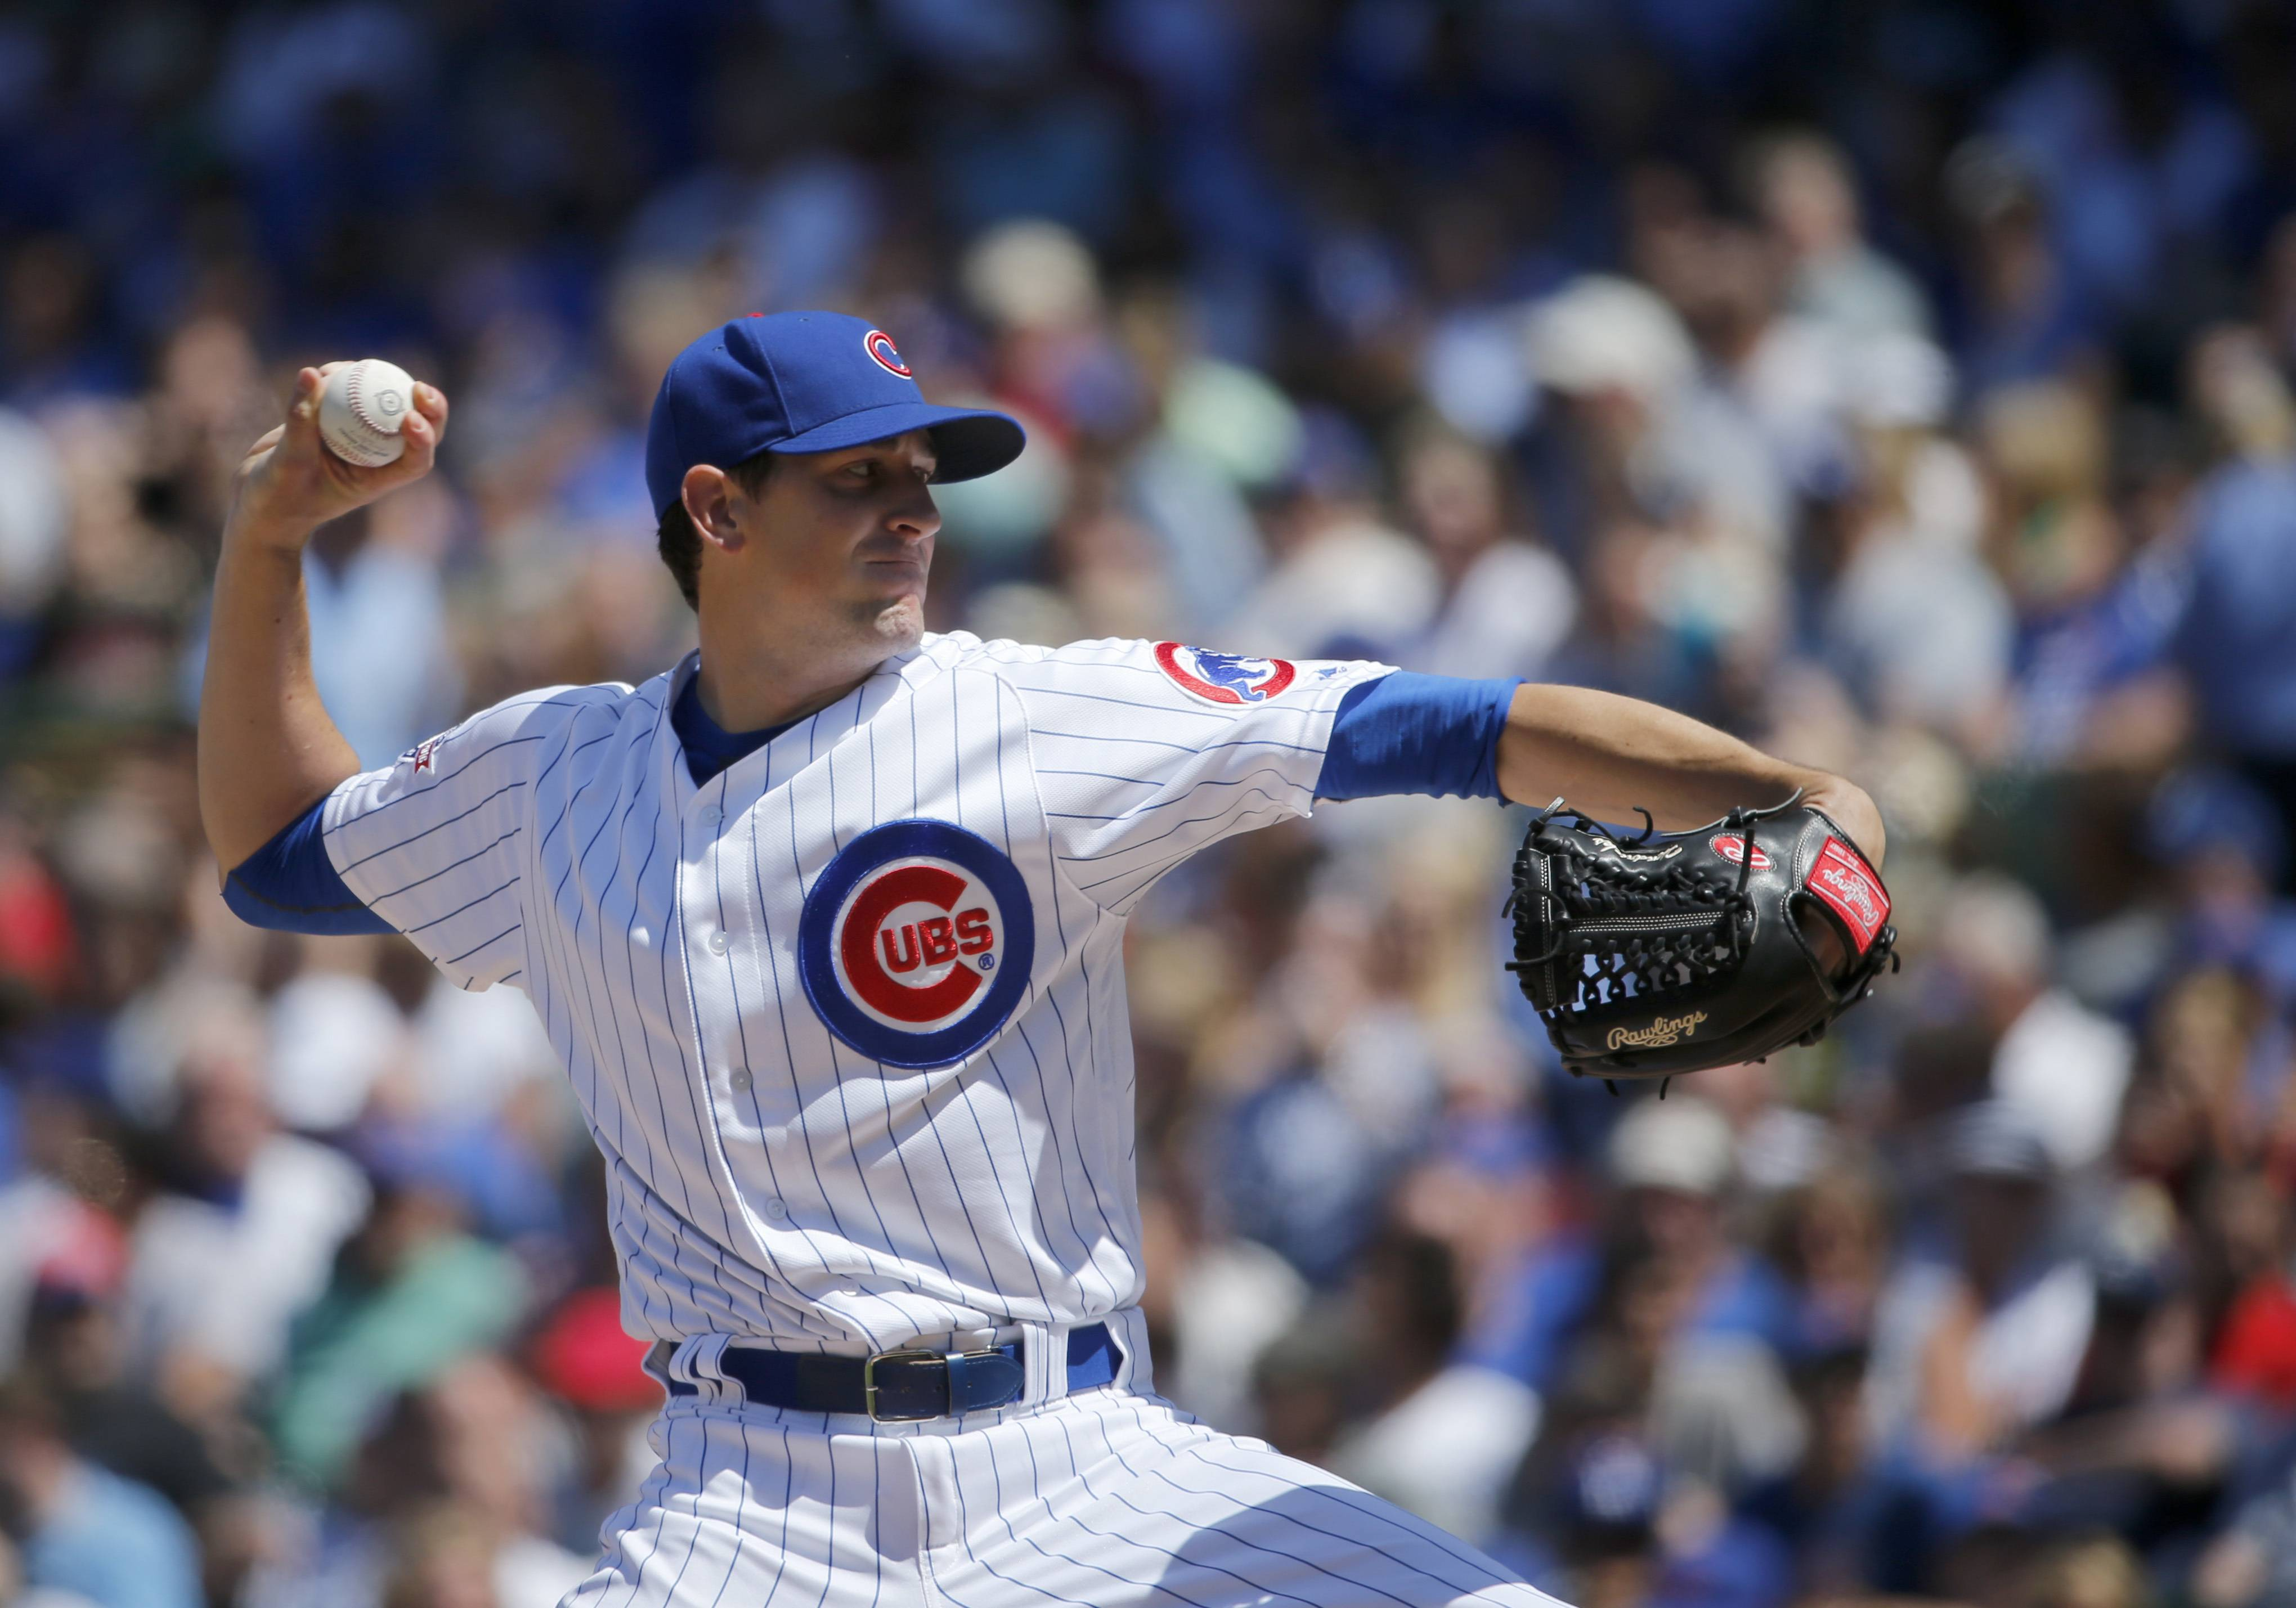 Chicago Cubs starting pitcher Kyle Hendricks delivers during the fifth inning of a baseball game against the Los Angeles Dodgers Thursday, June 2, 2016, in Chicago.